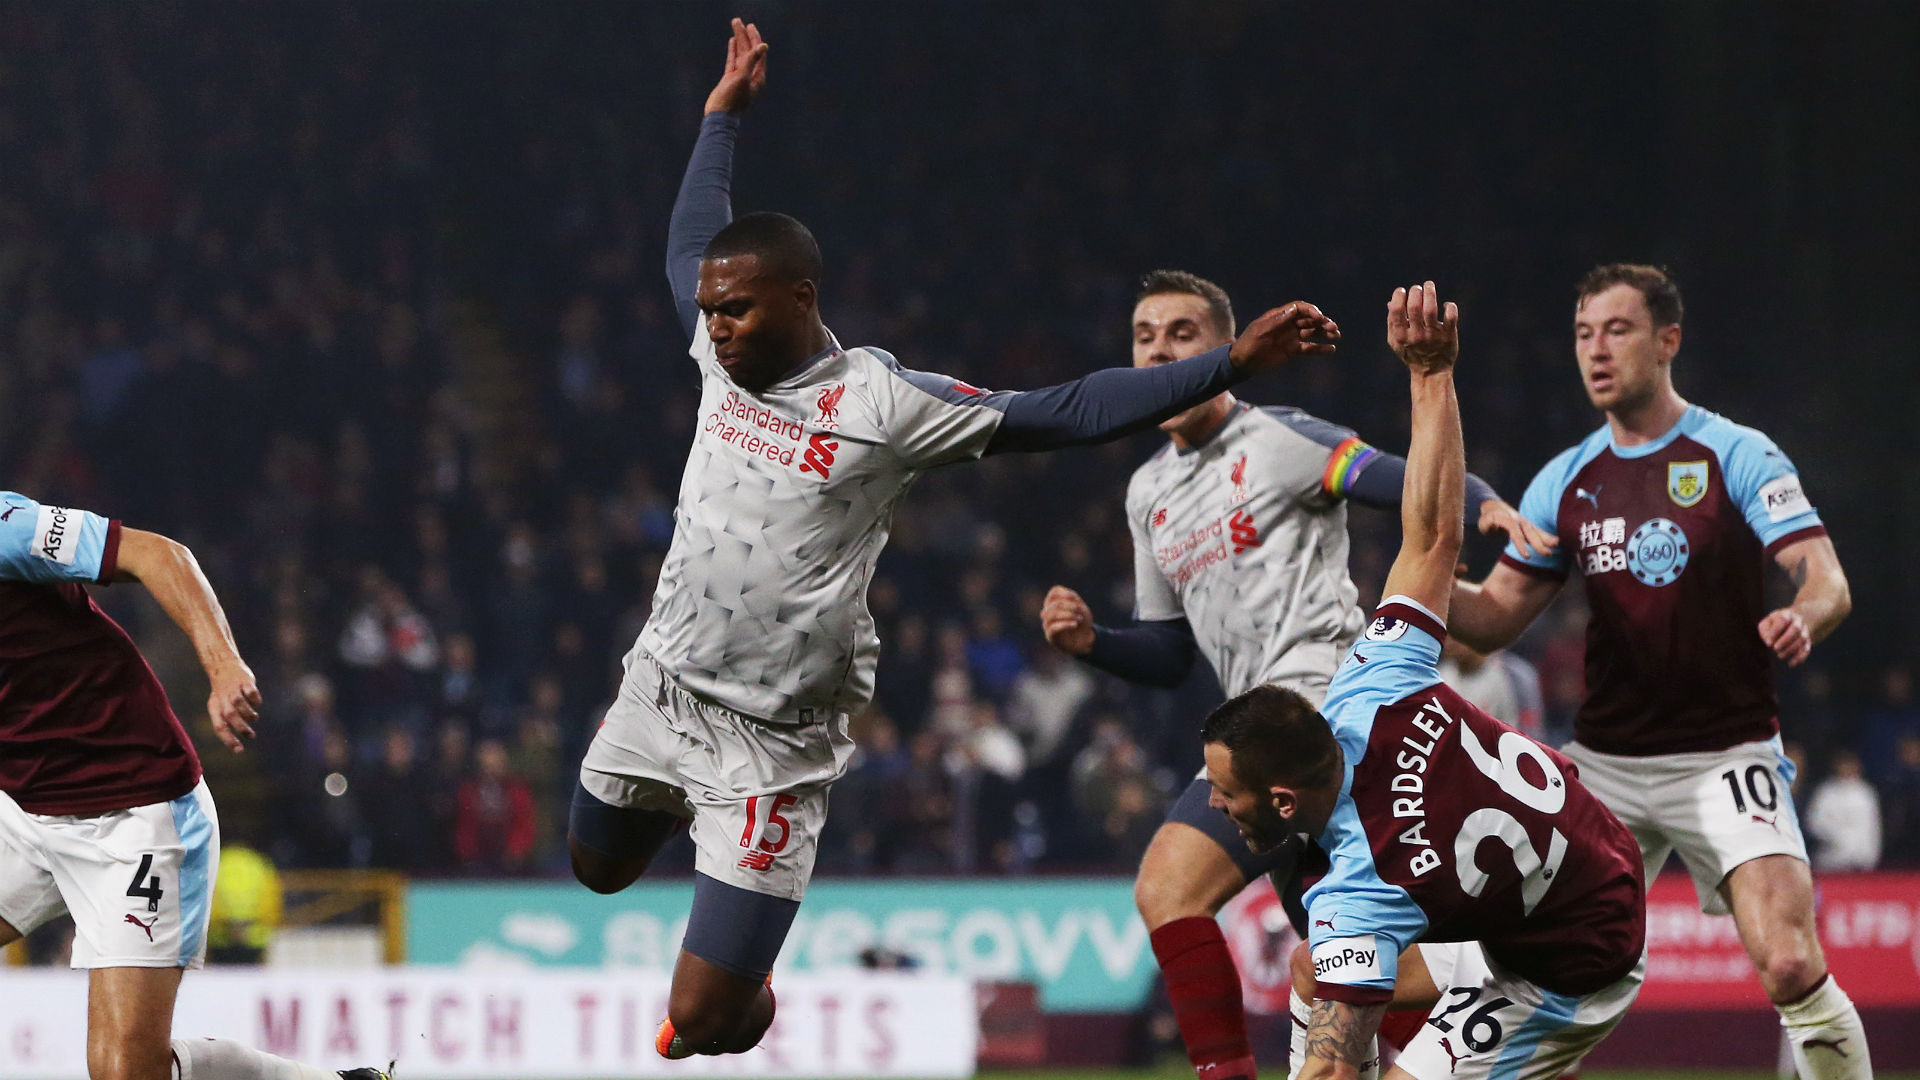 EPL: Liverpool's Origi sinks Everton with freak late goal